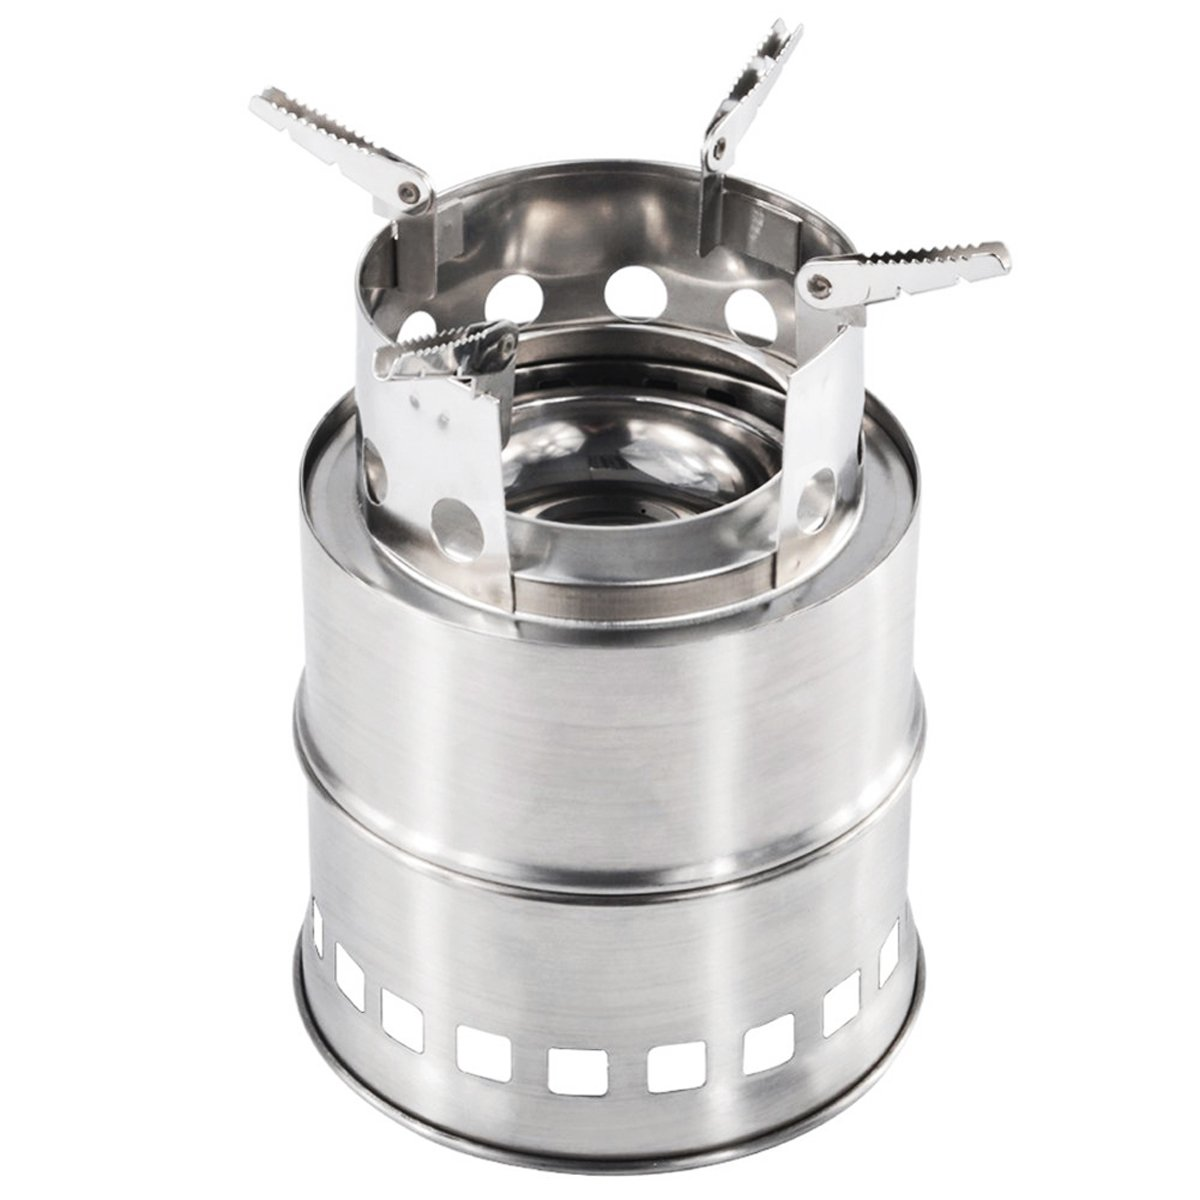 XUELIEE Portable Collapsible Stainless Steel Wood Burning Camping Stove Outdoor Backpacking Camping Stoves